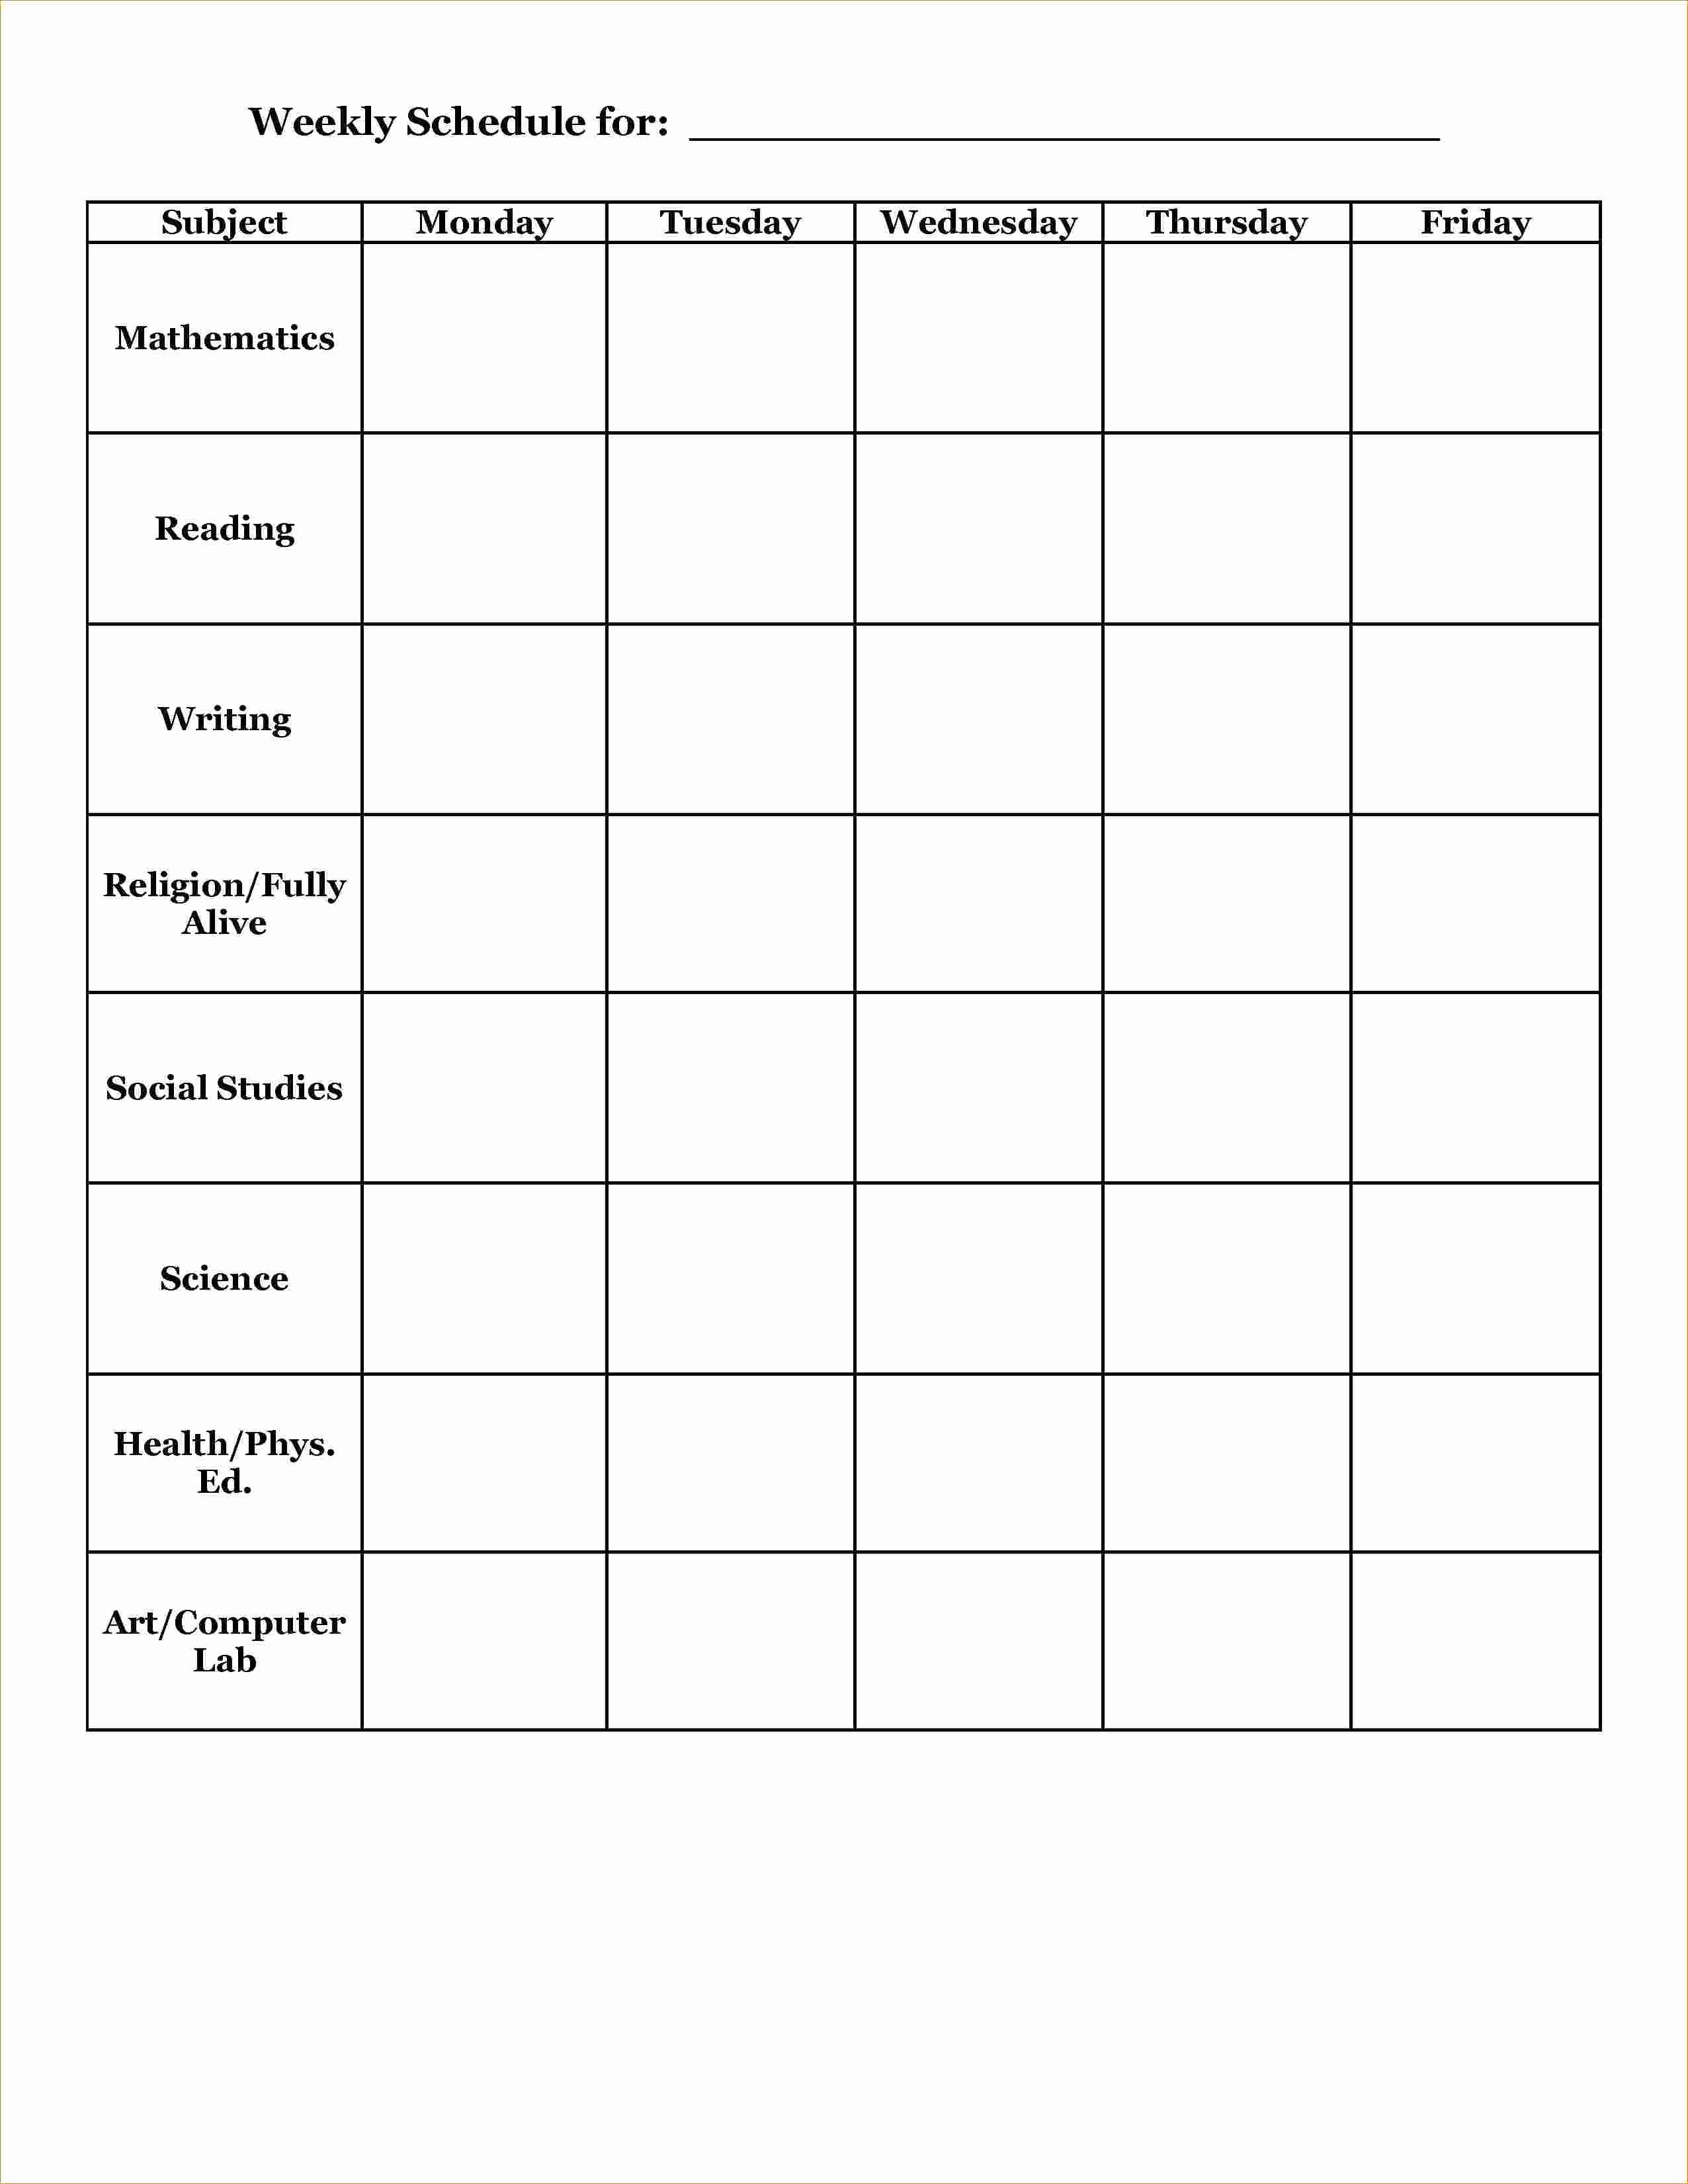 Weekly Planner Template for Teachers Unique 4 School Planner Template